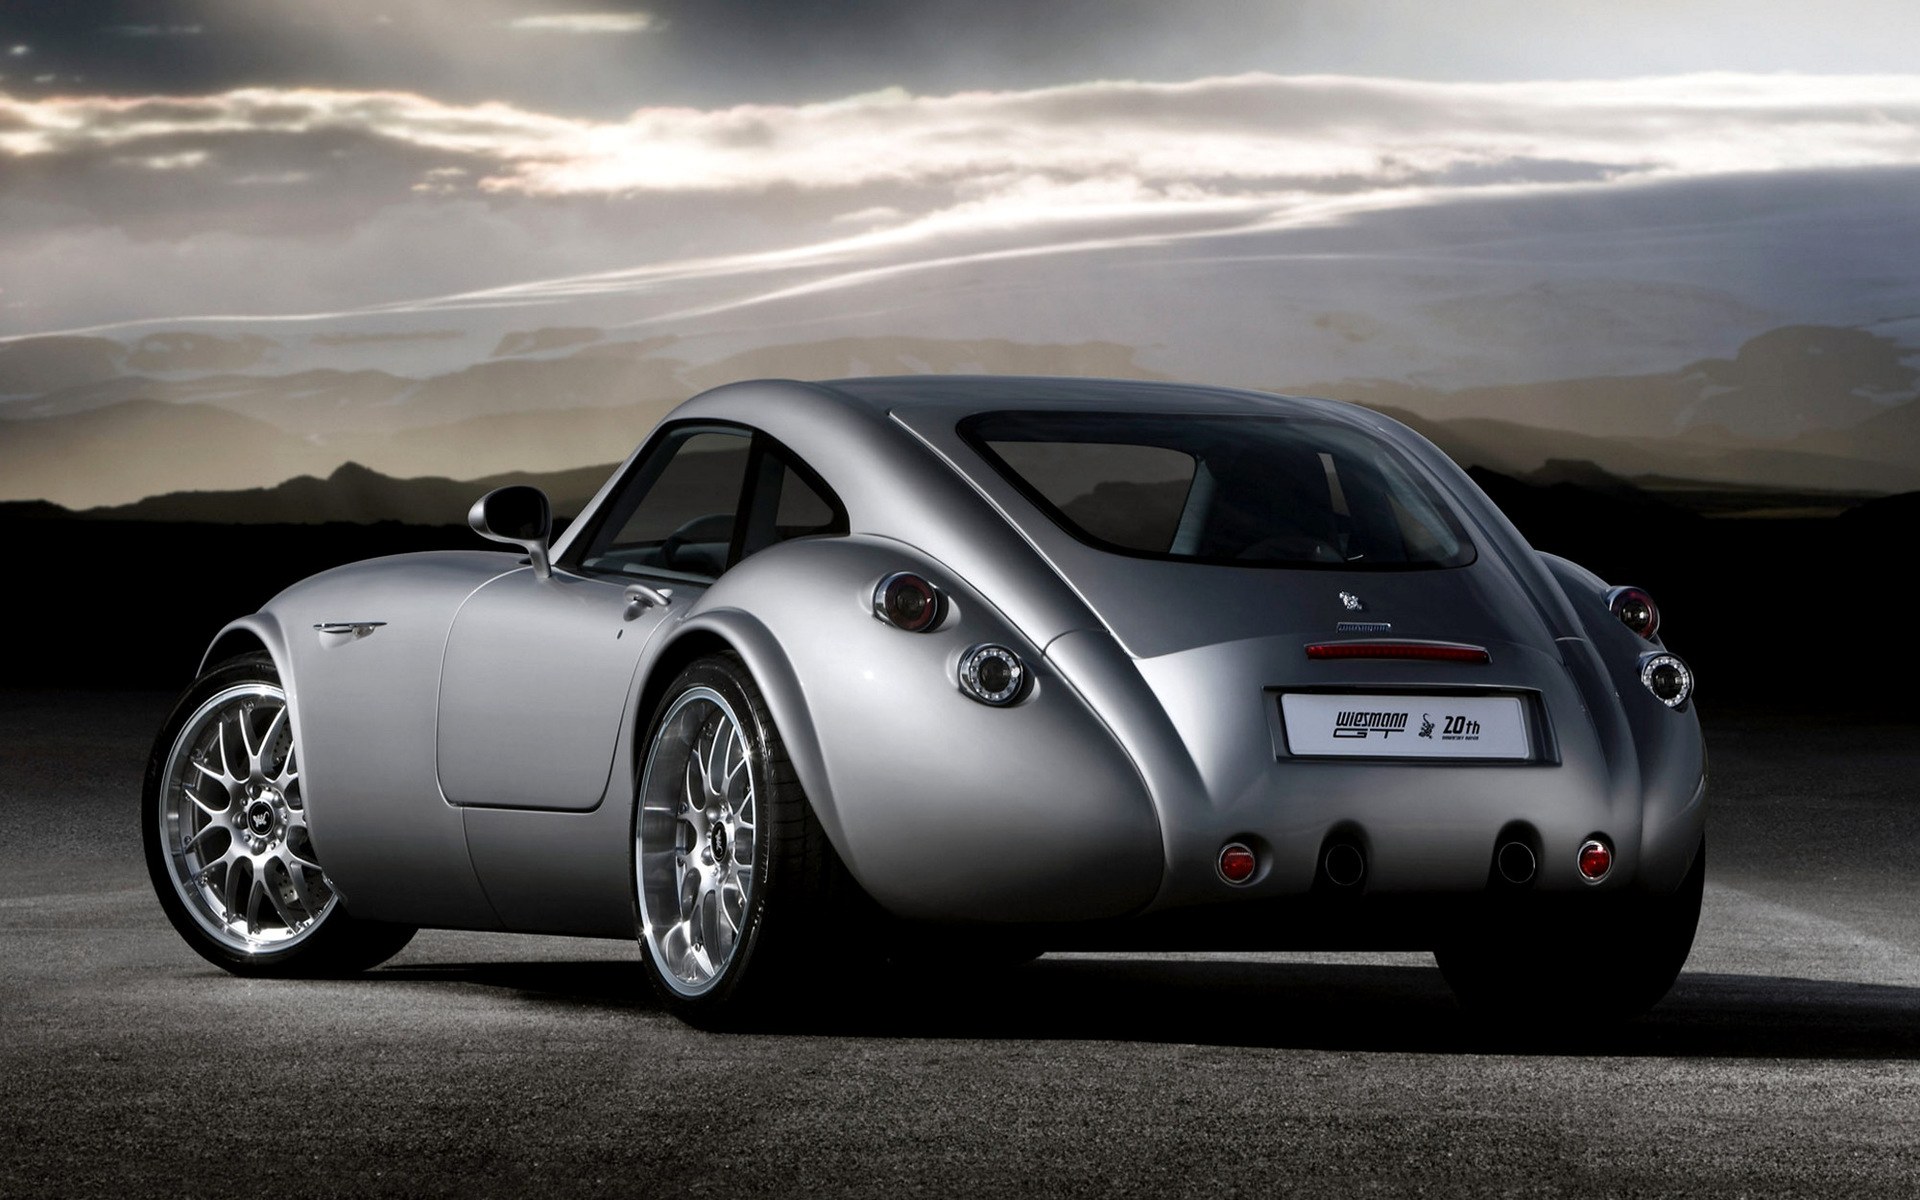 1920x1200 - Wiesmann GT MF4 Wallpapers 28